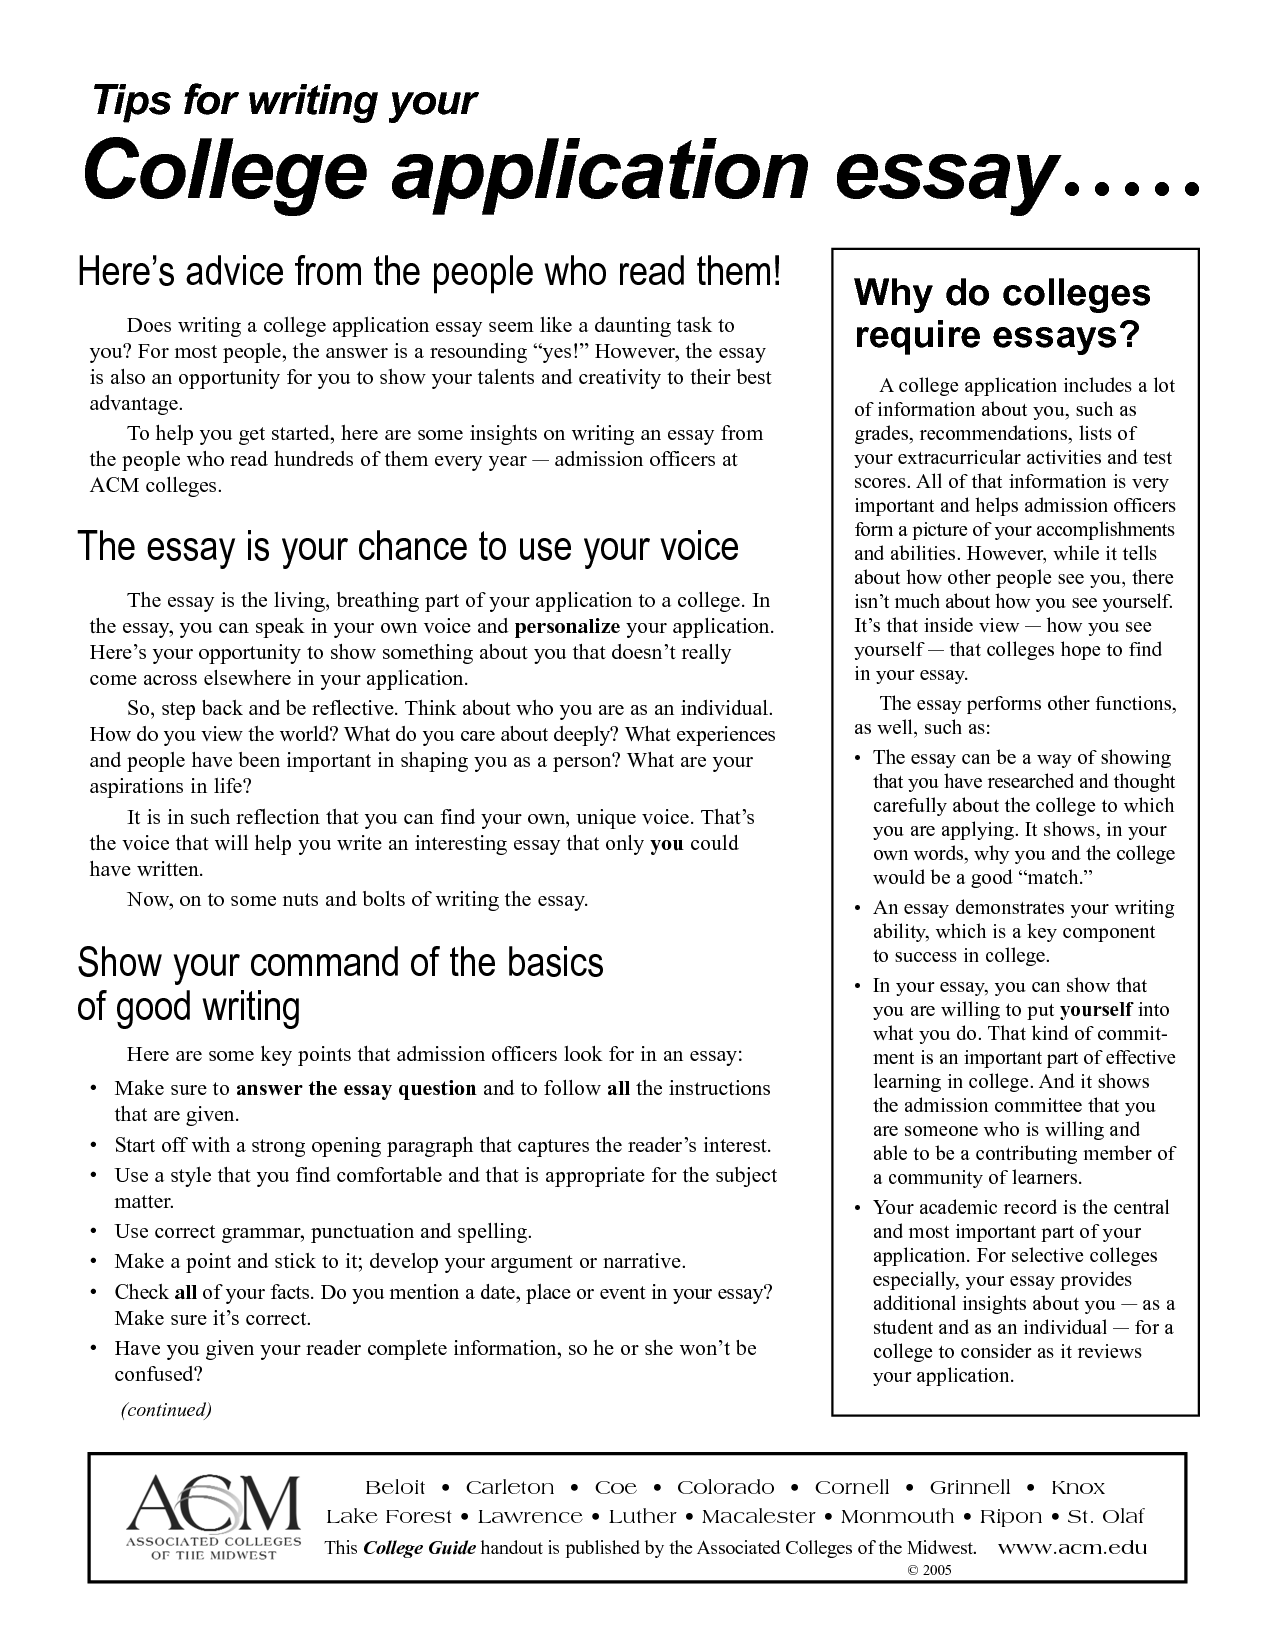 Buy college application essay xavier university